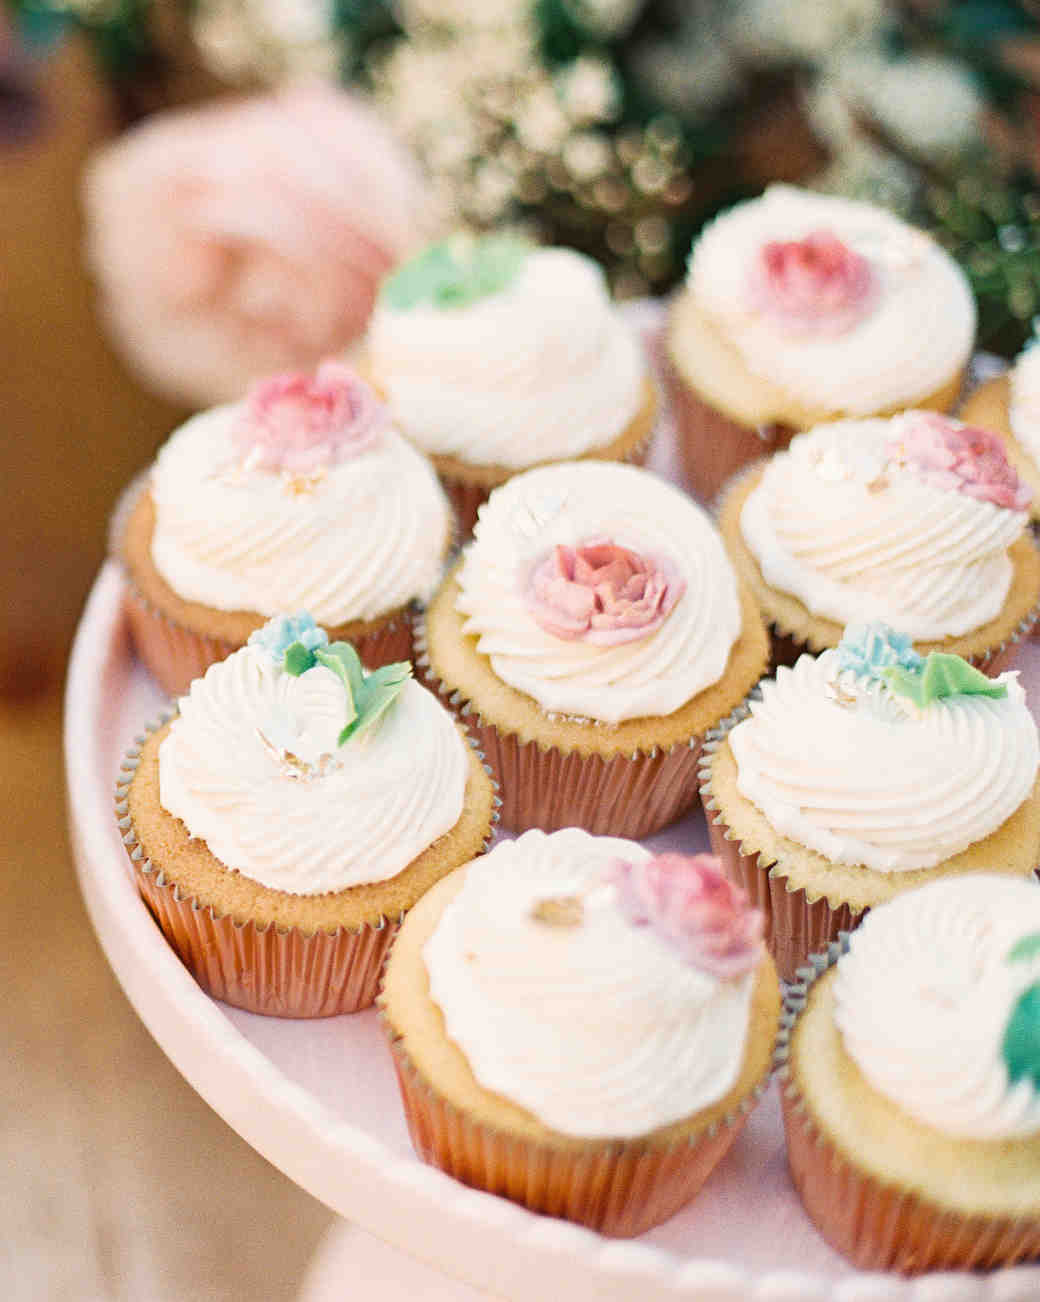 cupcakes with sugar flowers